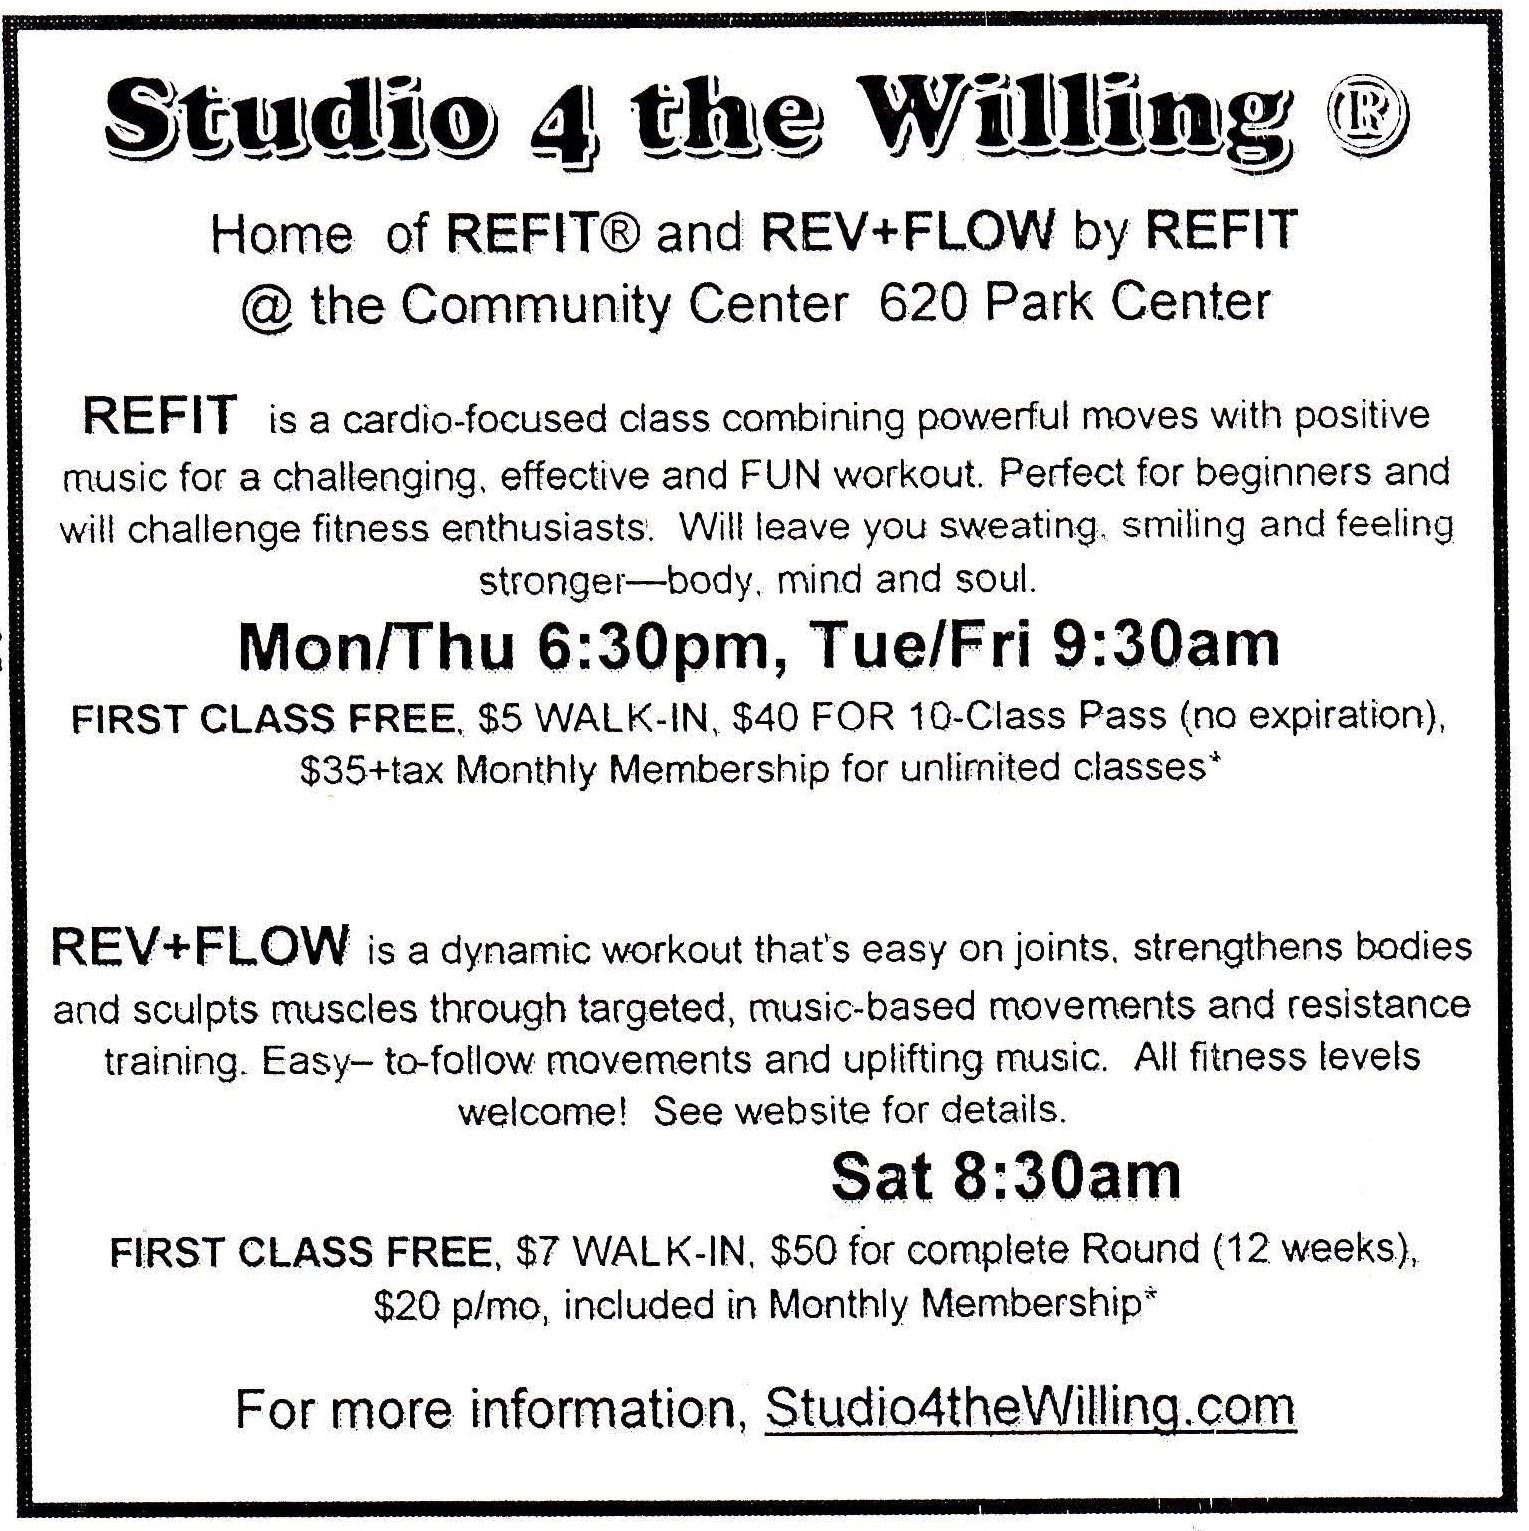 Studio for the Willing Cardio Class Flyer